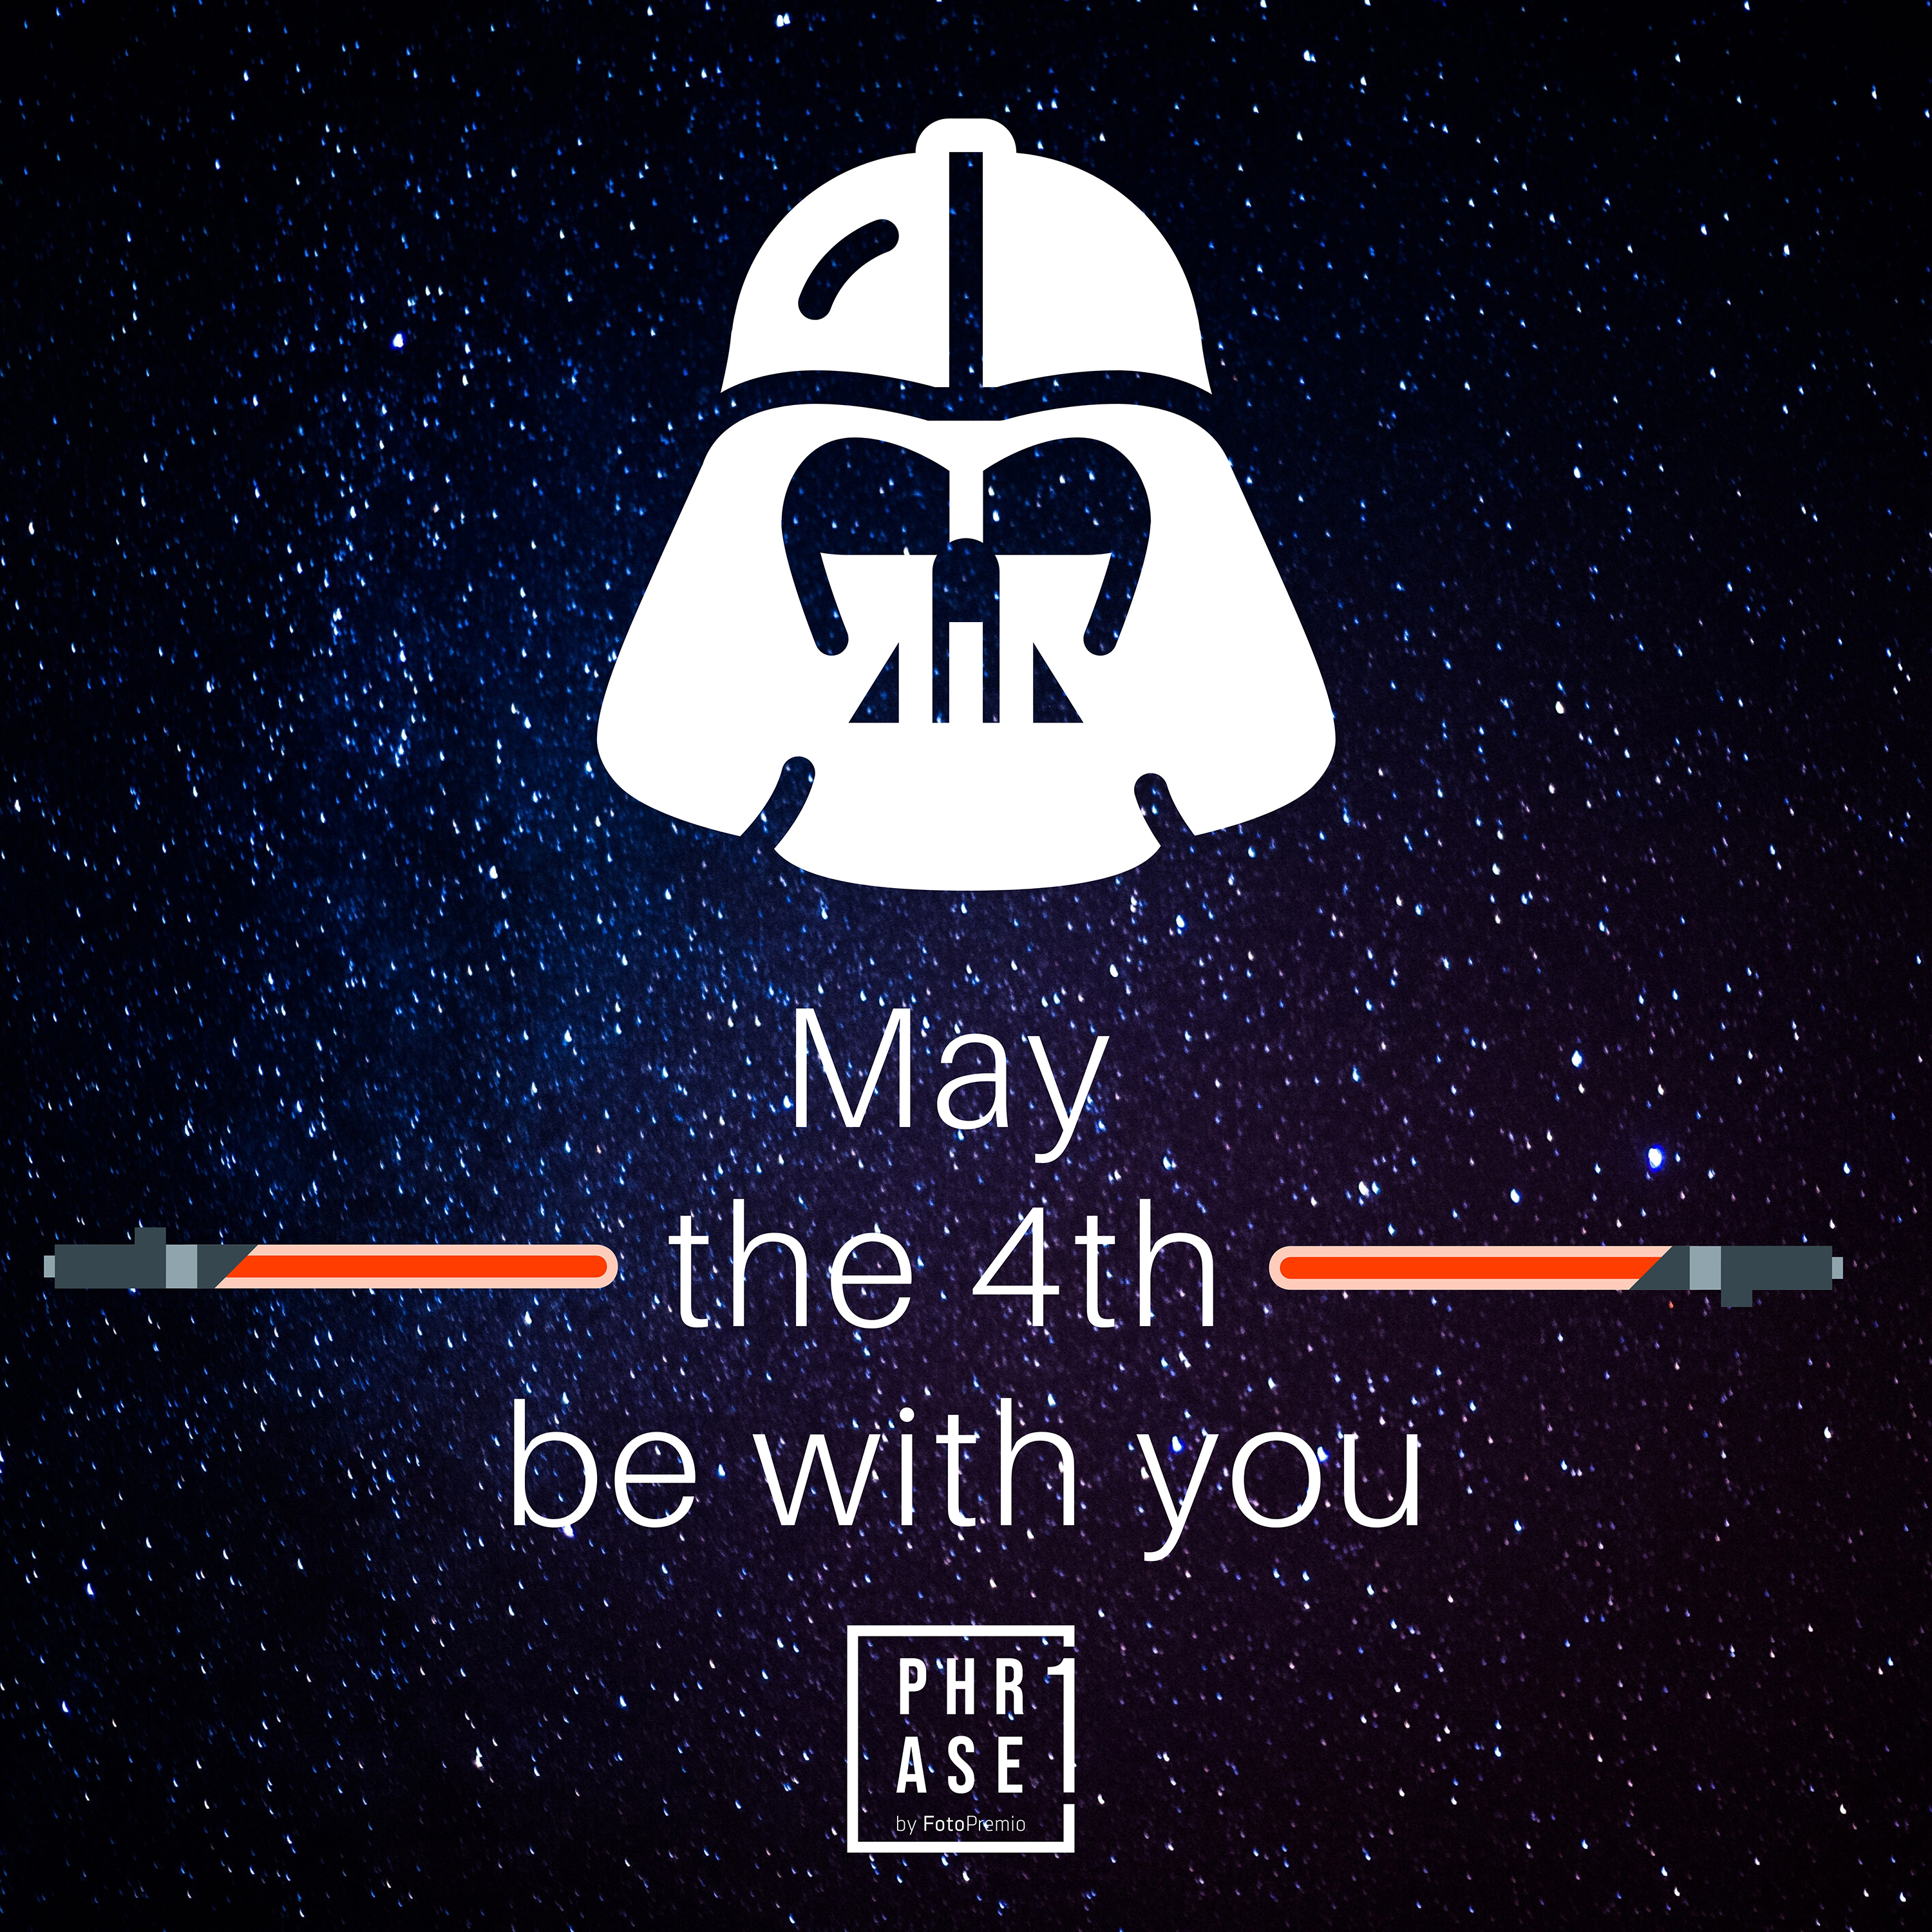 May the 4th be with you – Star Wars